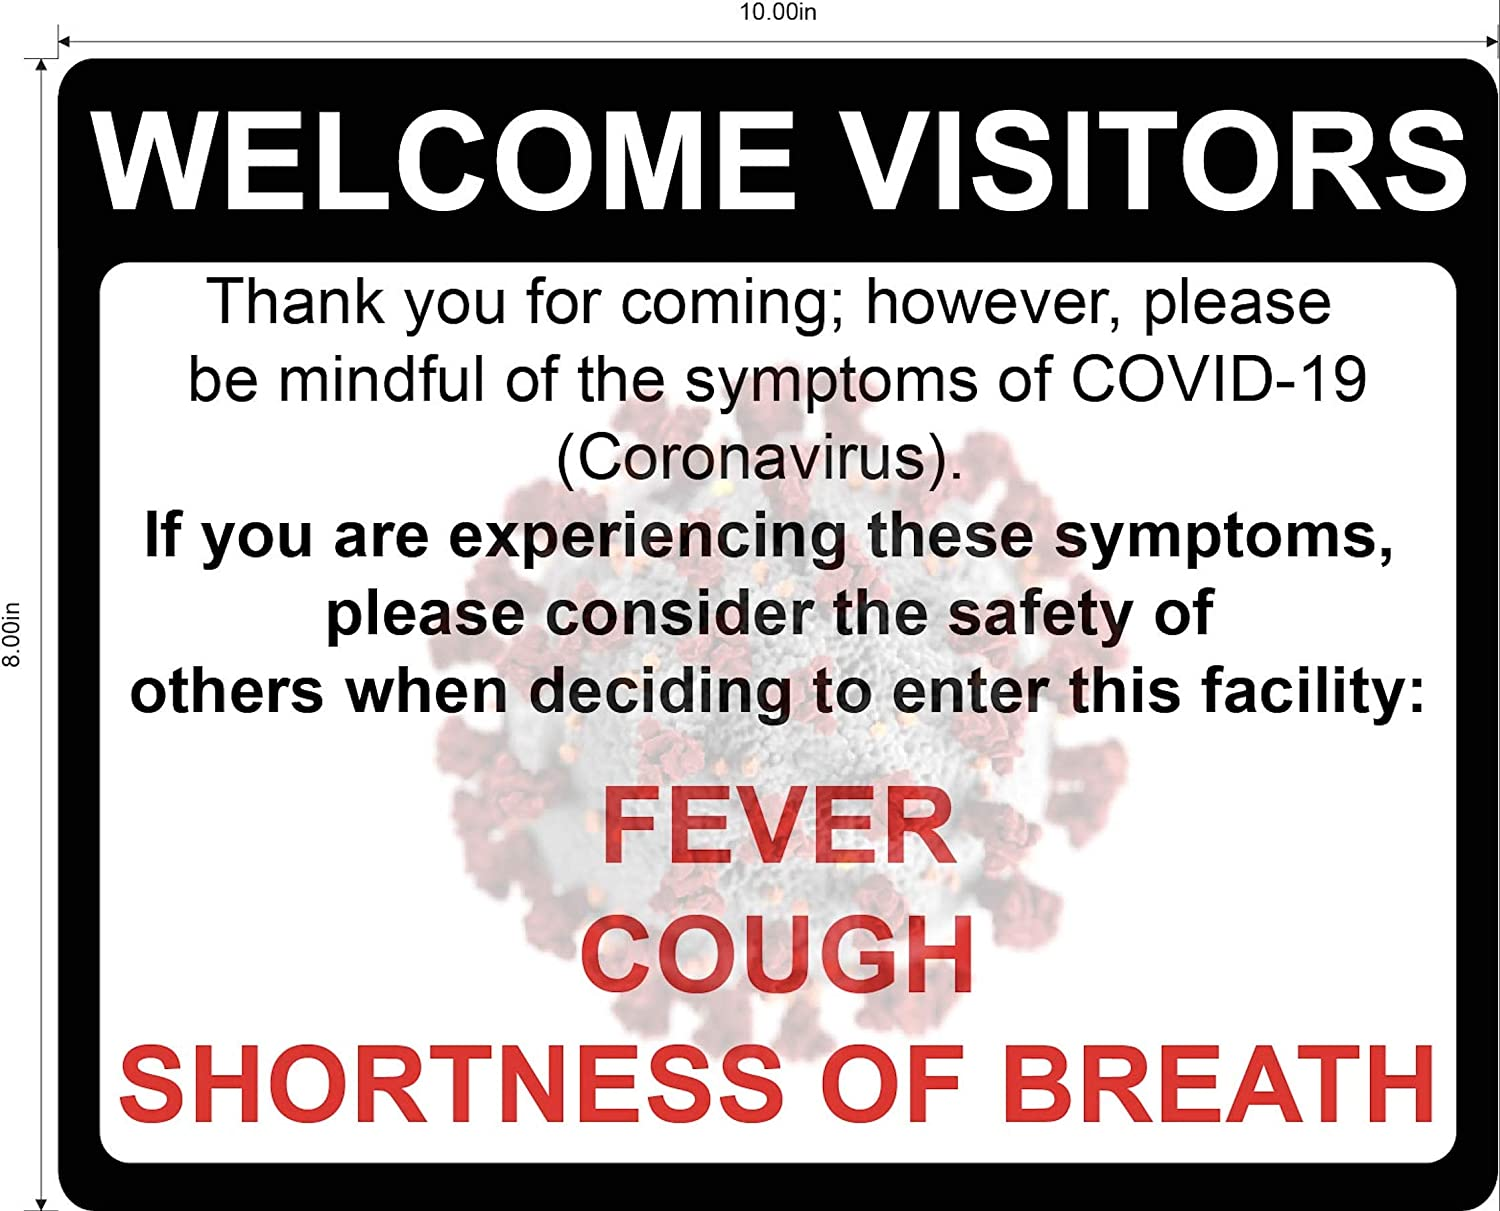 Coronavirus Sign by Graphical Warehouse- Safety and Security Signage Do Not Enter with Symptoms COVID-19 Visual Communication Tool- Red//White//Black - 10x7 Durable Vinyl Decal